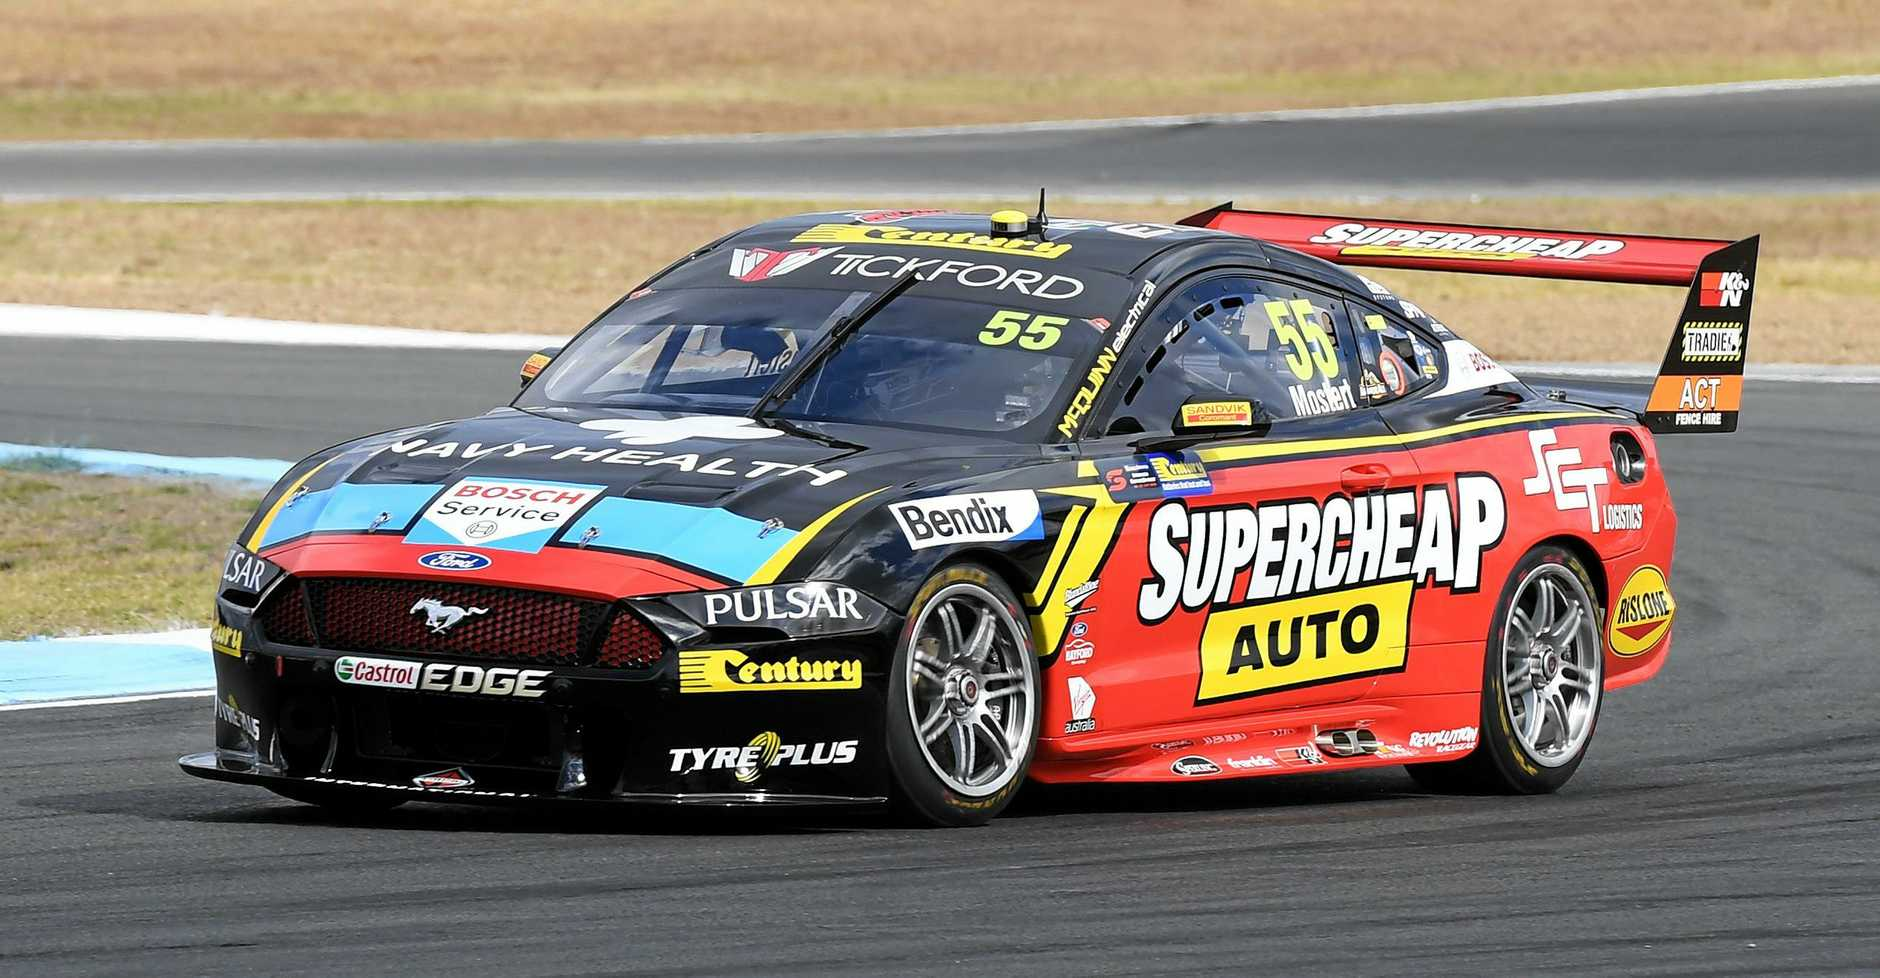 PODIUM: Supercheap Auto Racing's Chaz Mostert had a solid weekend at the Ipswich SuperSprint at Queensland Raceway.